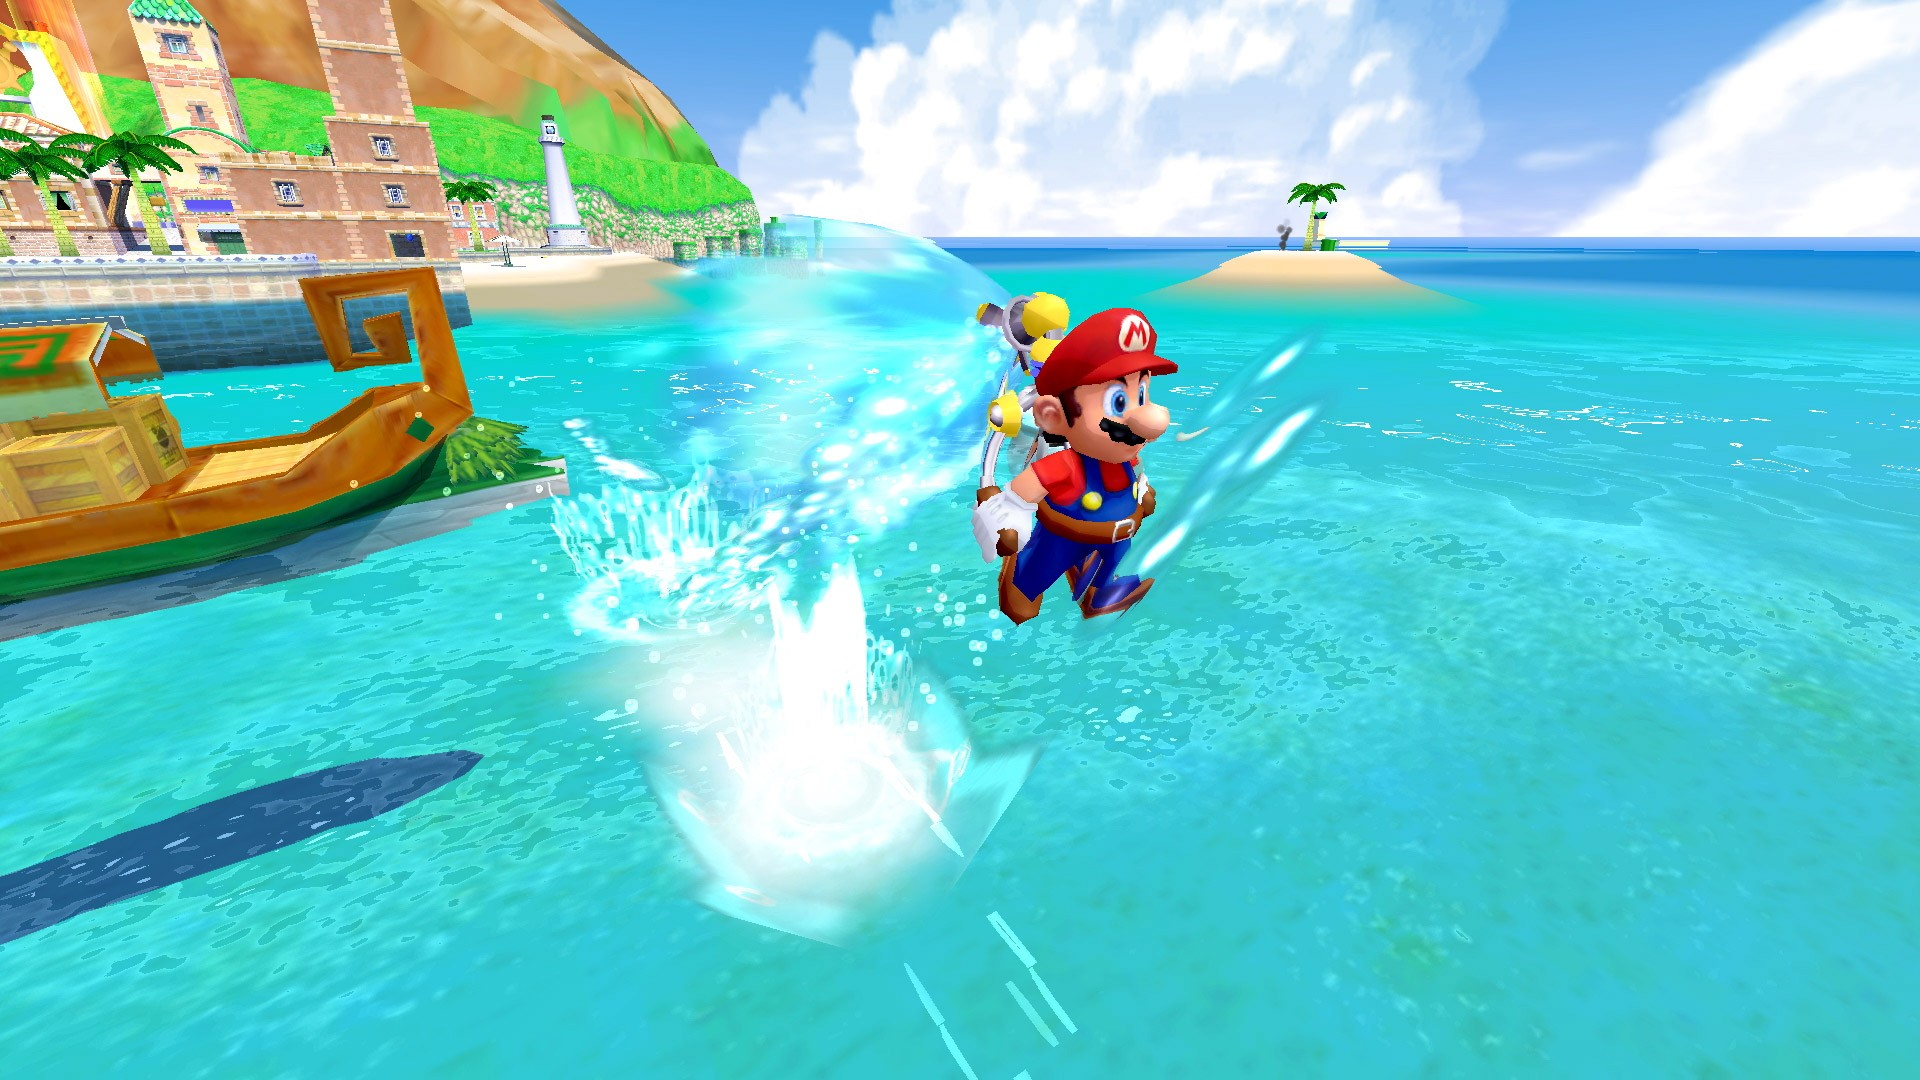 Action, adventure, Nintendo, Nintendo Switch Review, Platformer, Rating 8/10, Super Mario 3D All-Stars, Super Mario 3D All-Stars Review, Super Mario 64, Super Mario 64 Review, Super Mario Galaxy, Super Mario Galaxy Review, Super Mario Sunshine, Super Mario Sunshine Review, Switch Review